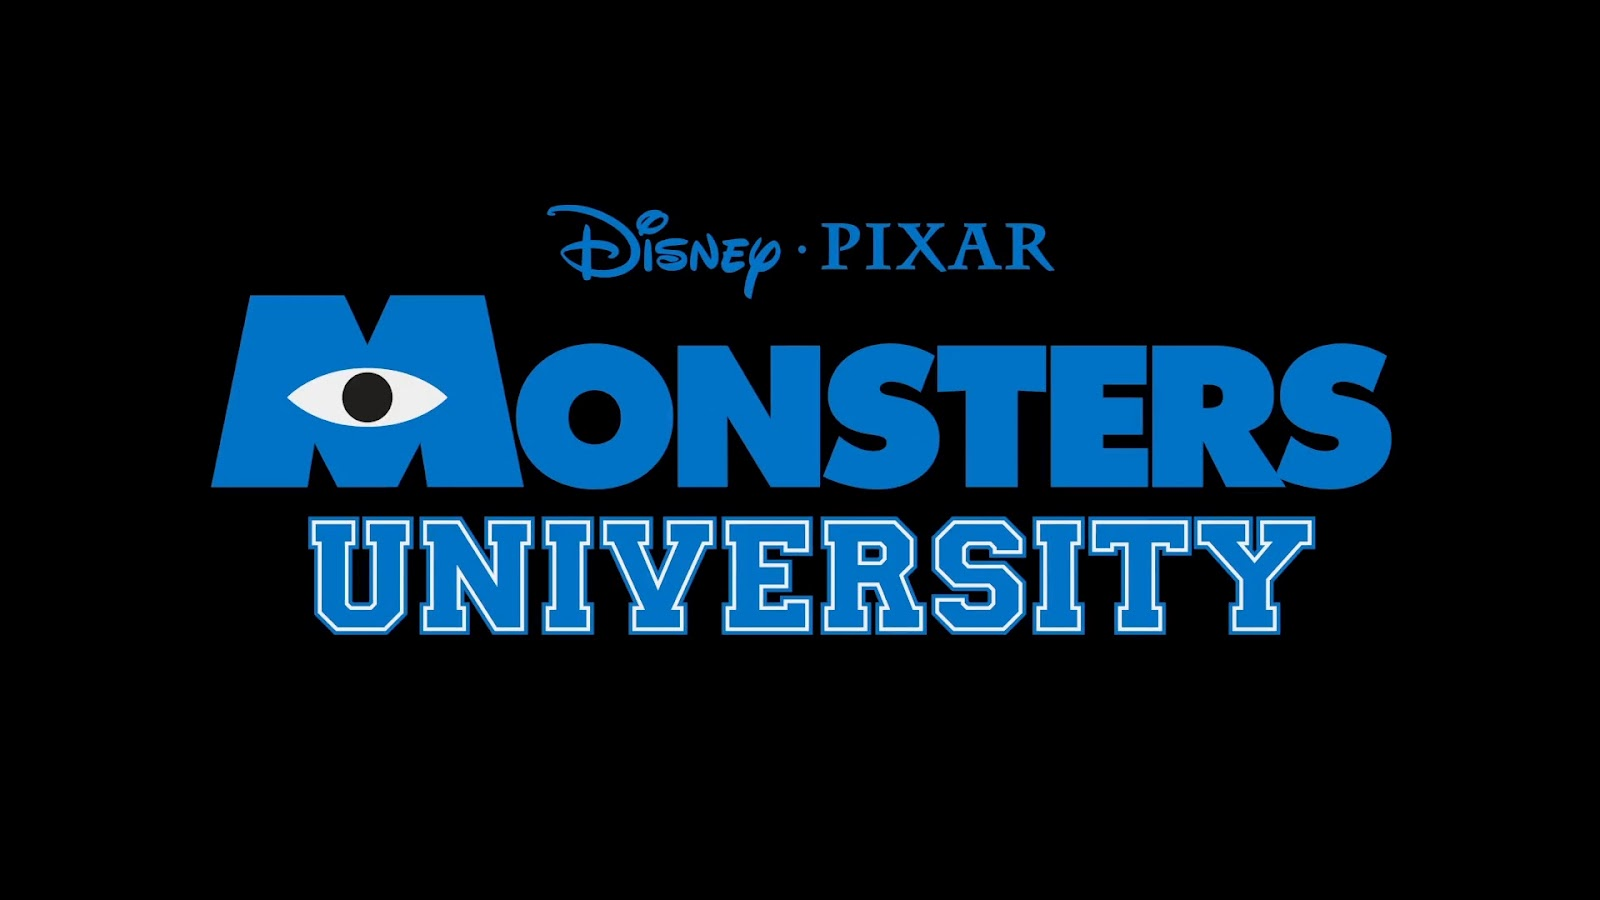 Monsters+University+02 Pixars Monsters University Teaser Trailer Shows A Little Glimpse of How Sully and Mike Spent Their College Days